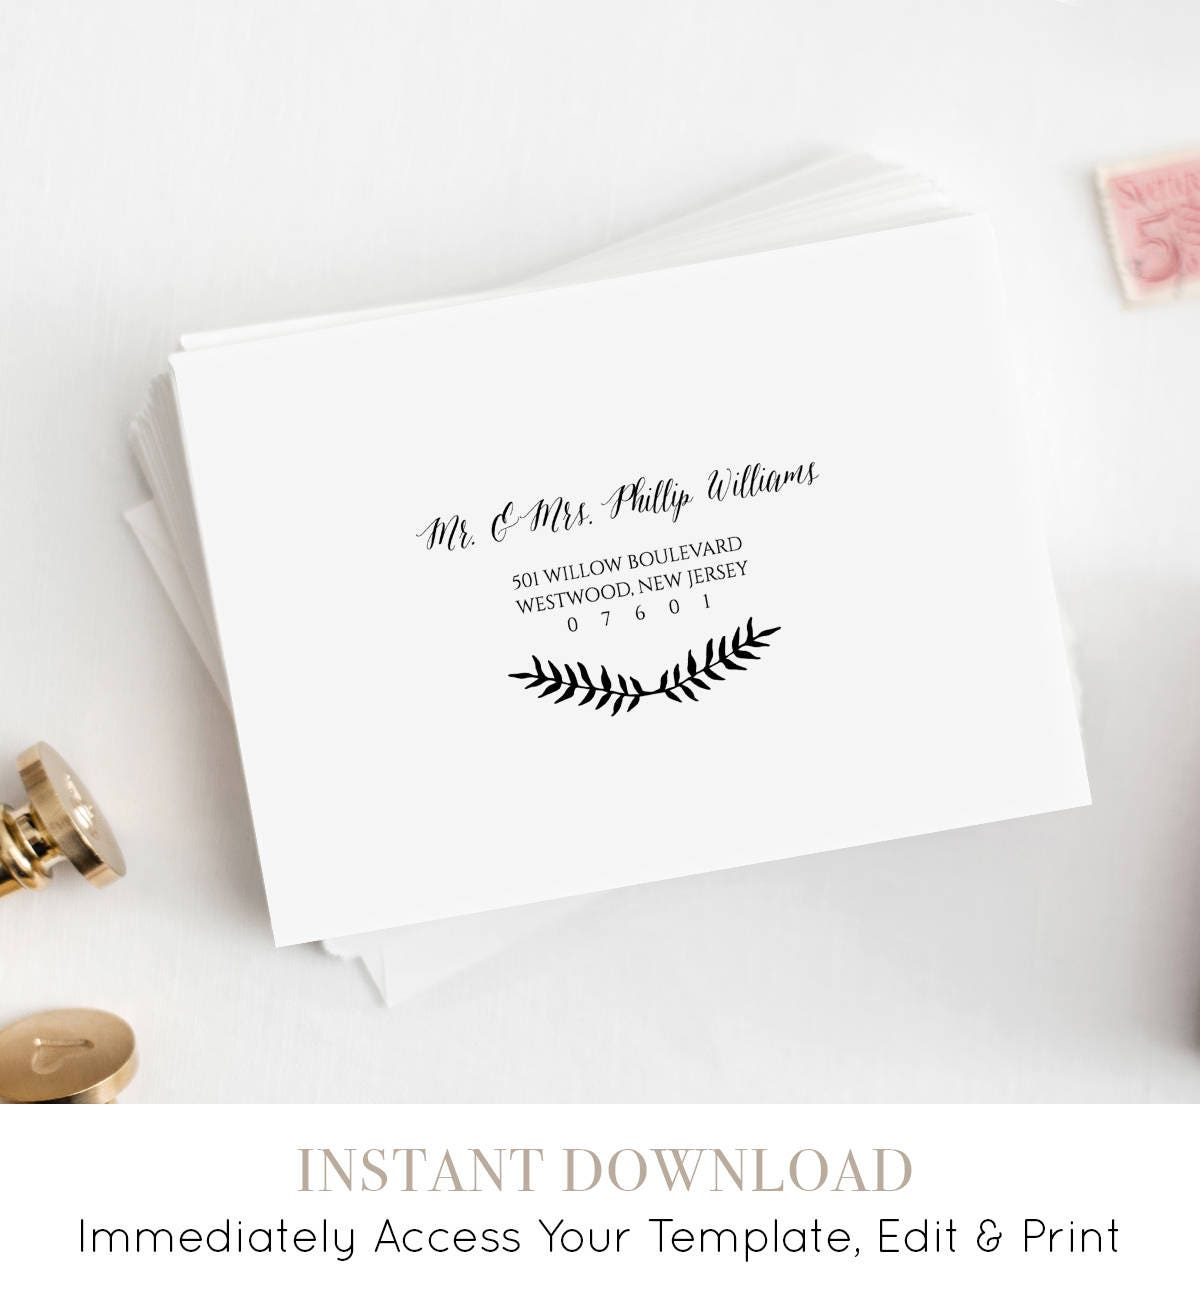 Custom Envelope Template, Printable Wedding Address